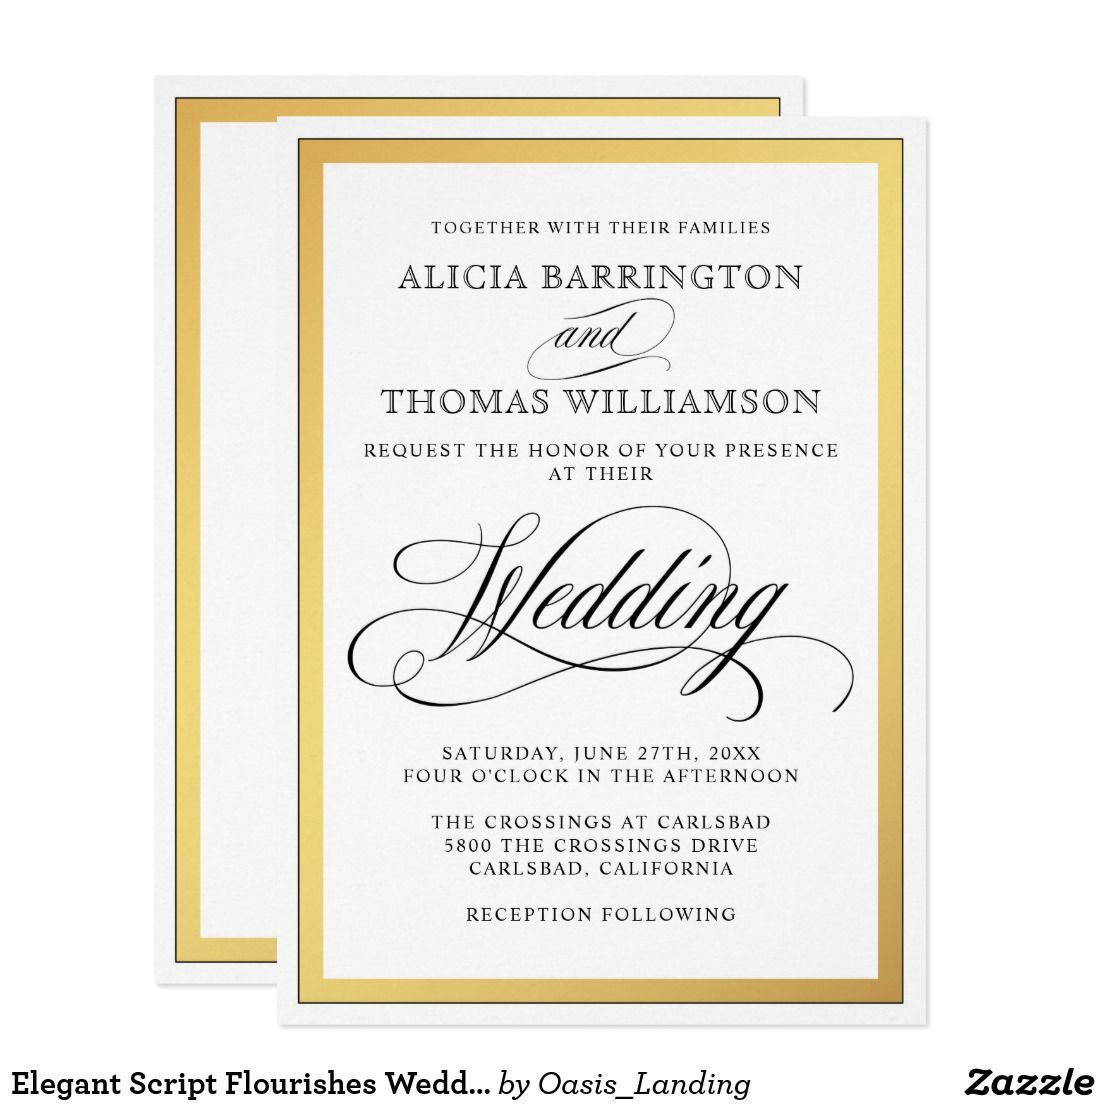 Elegant Script Flourishes Wedding Card A Beautifully Elegant